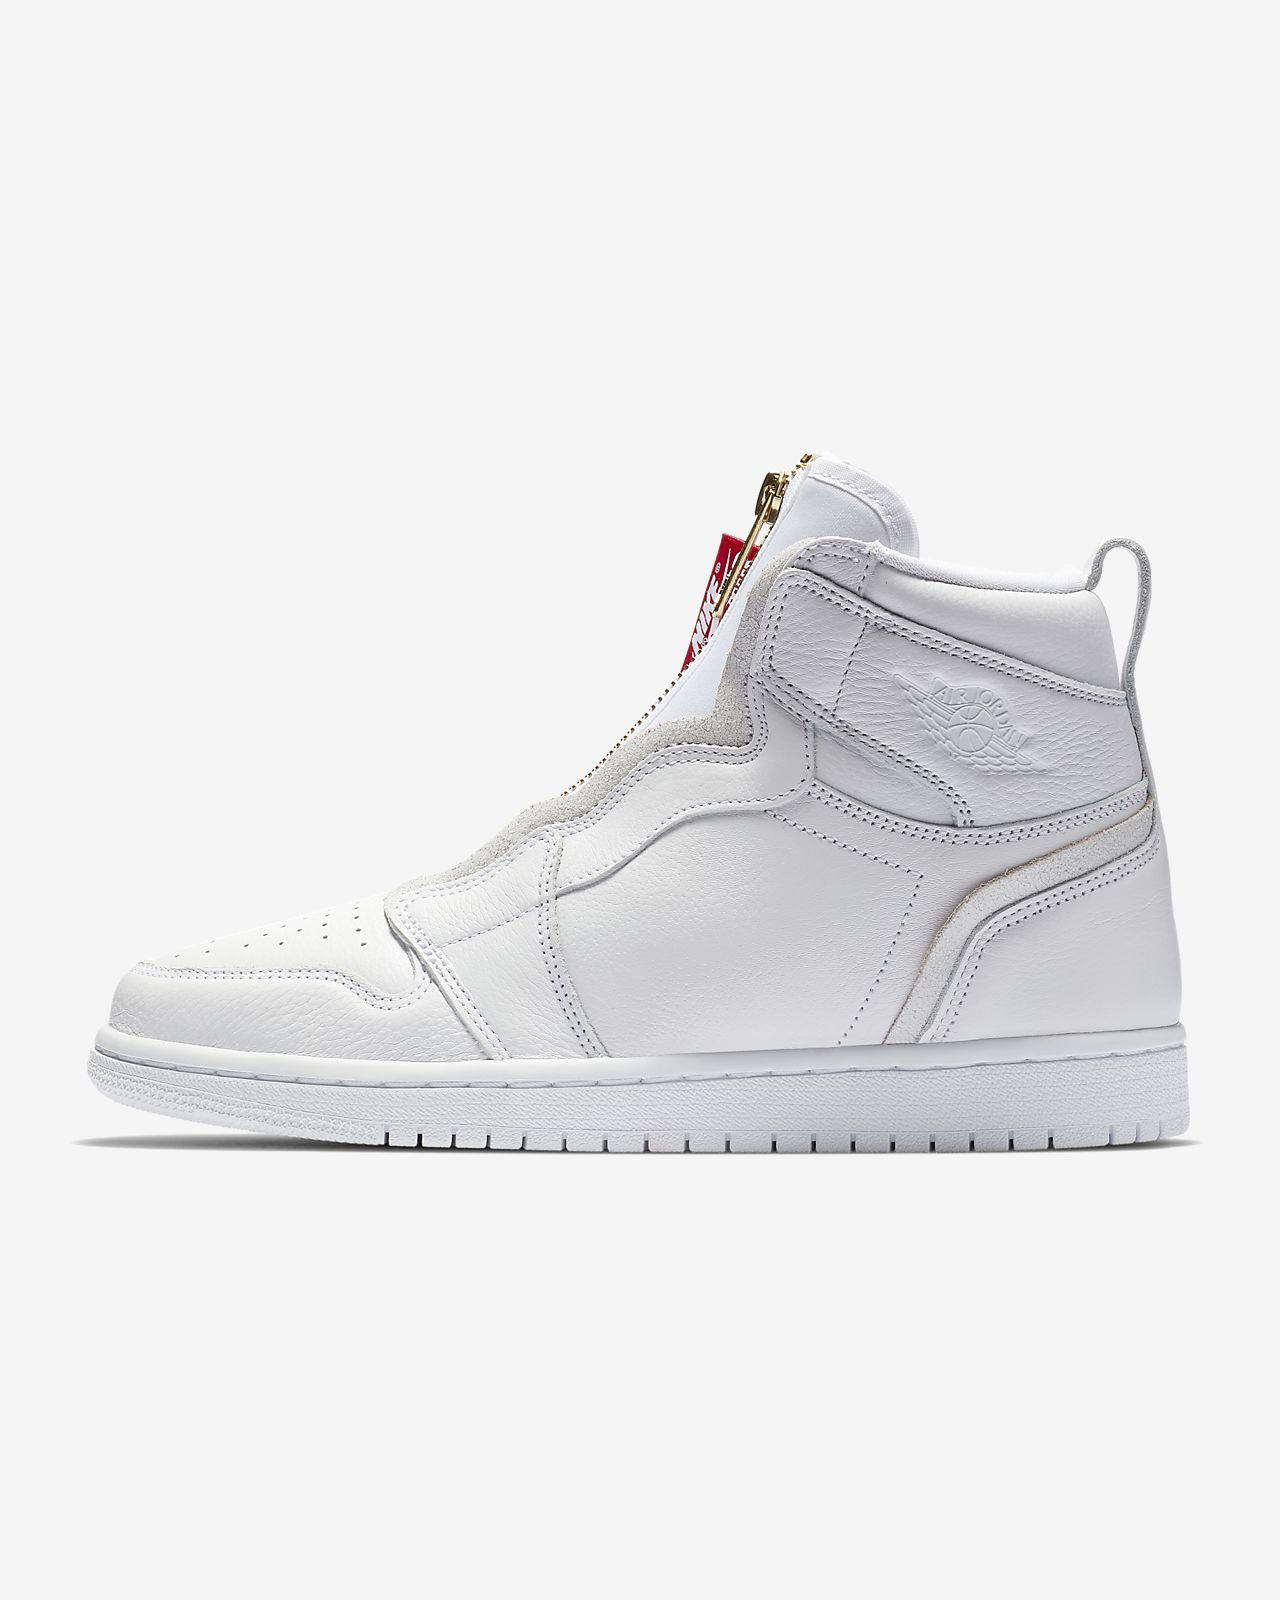 half off fc9cd 9e6d2 Women s Shoe. Air Jordan 1 High Zip